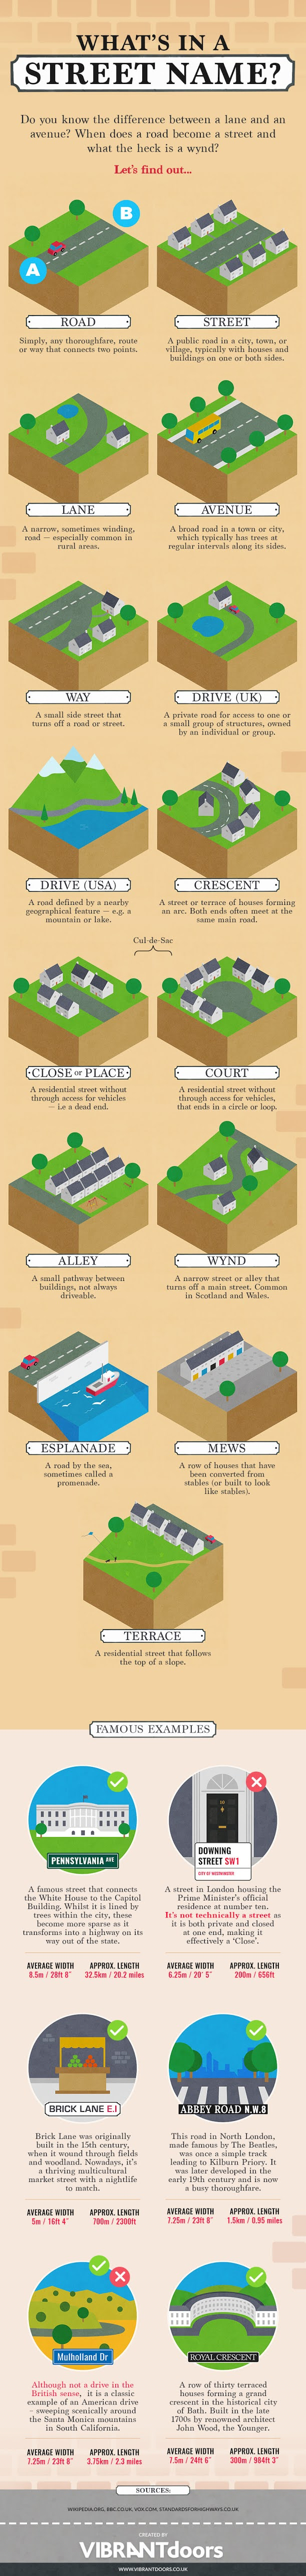 What's in a Street Name? #infographic